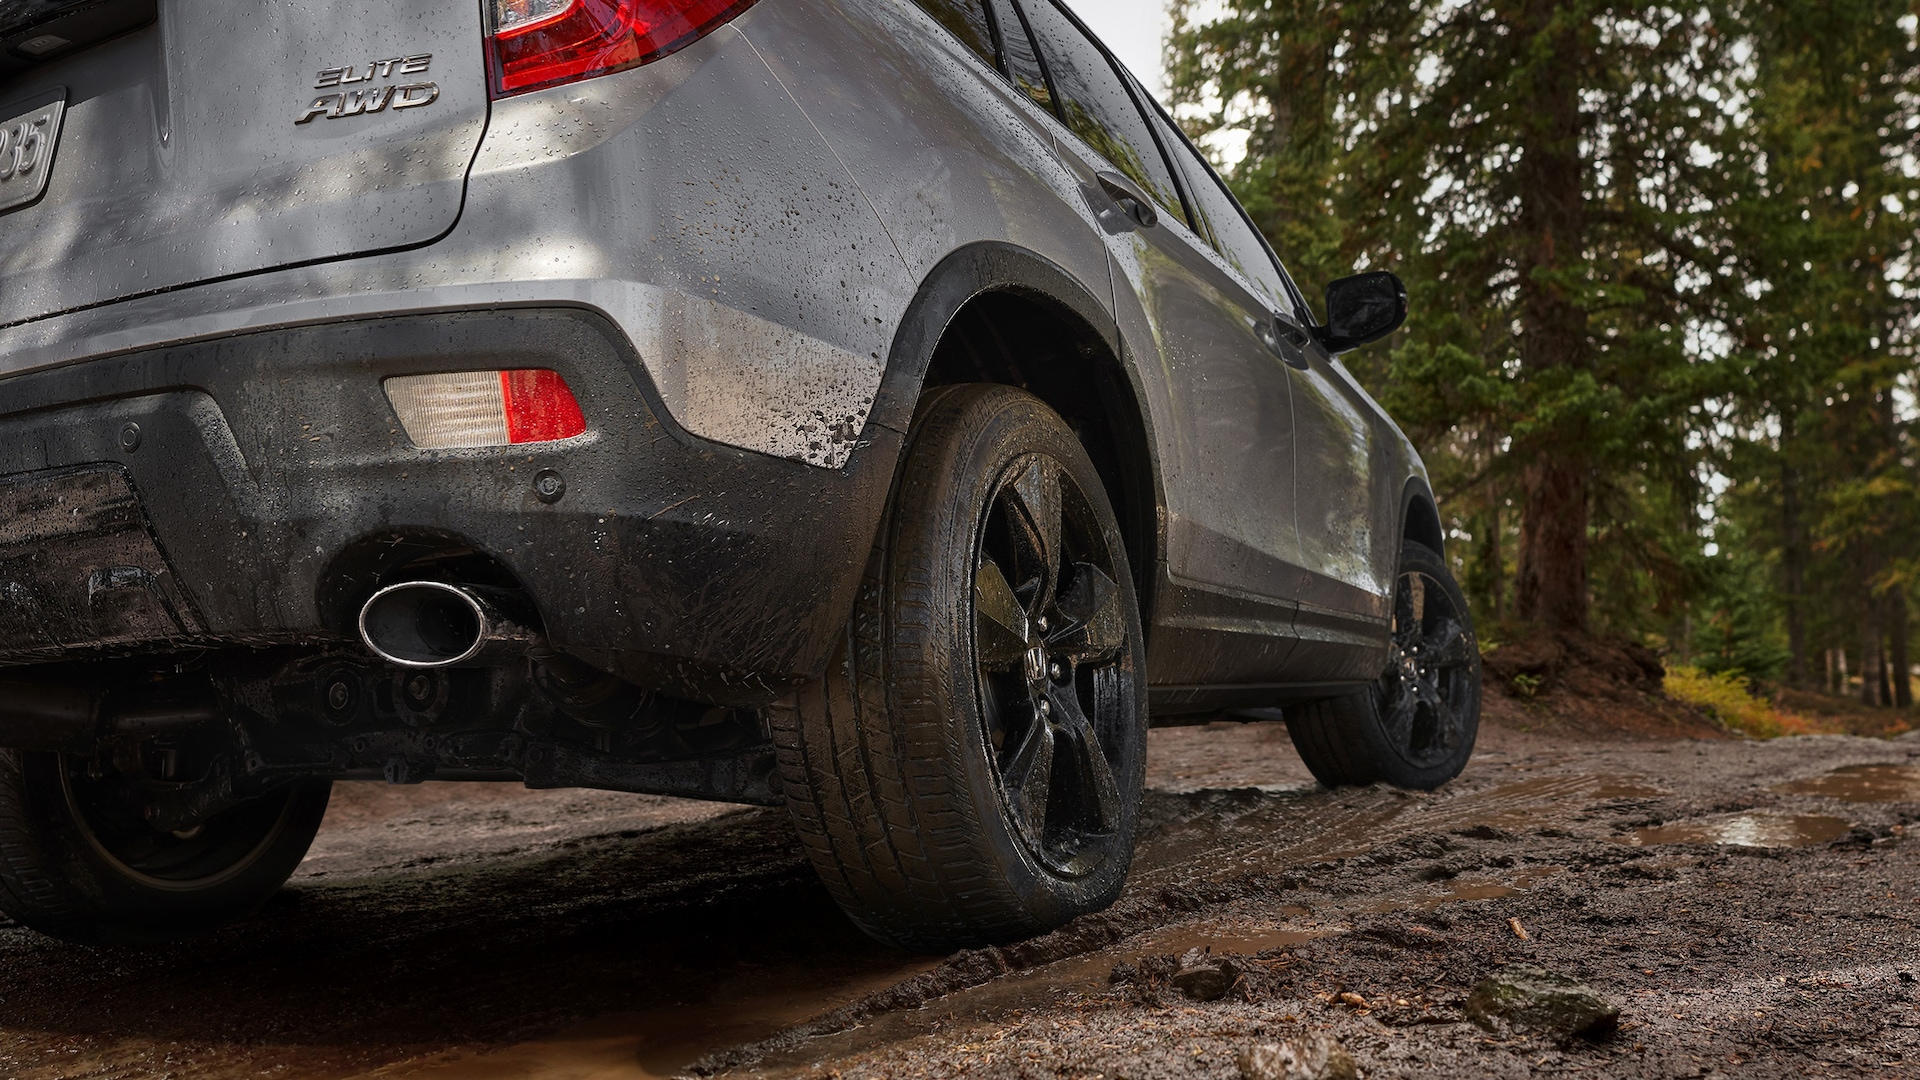 Passenger-side view of the 2021 Honda Passport Elite in Lunar Silver Metallic demonstrating all-season tires covered in mud on rocky terrain.